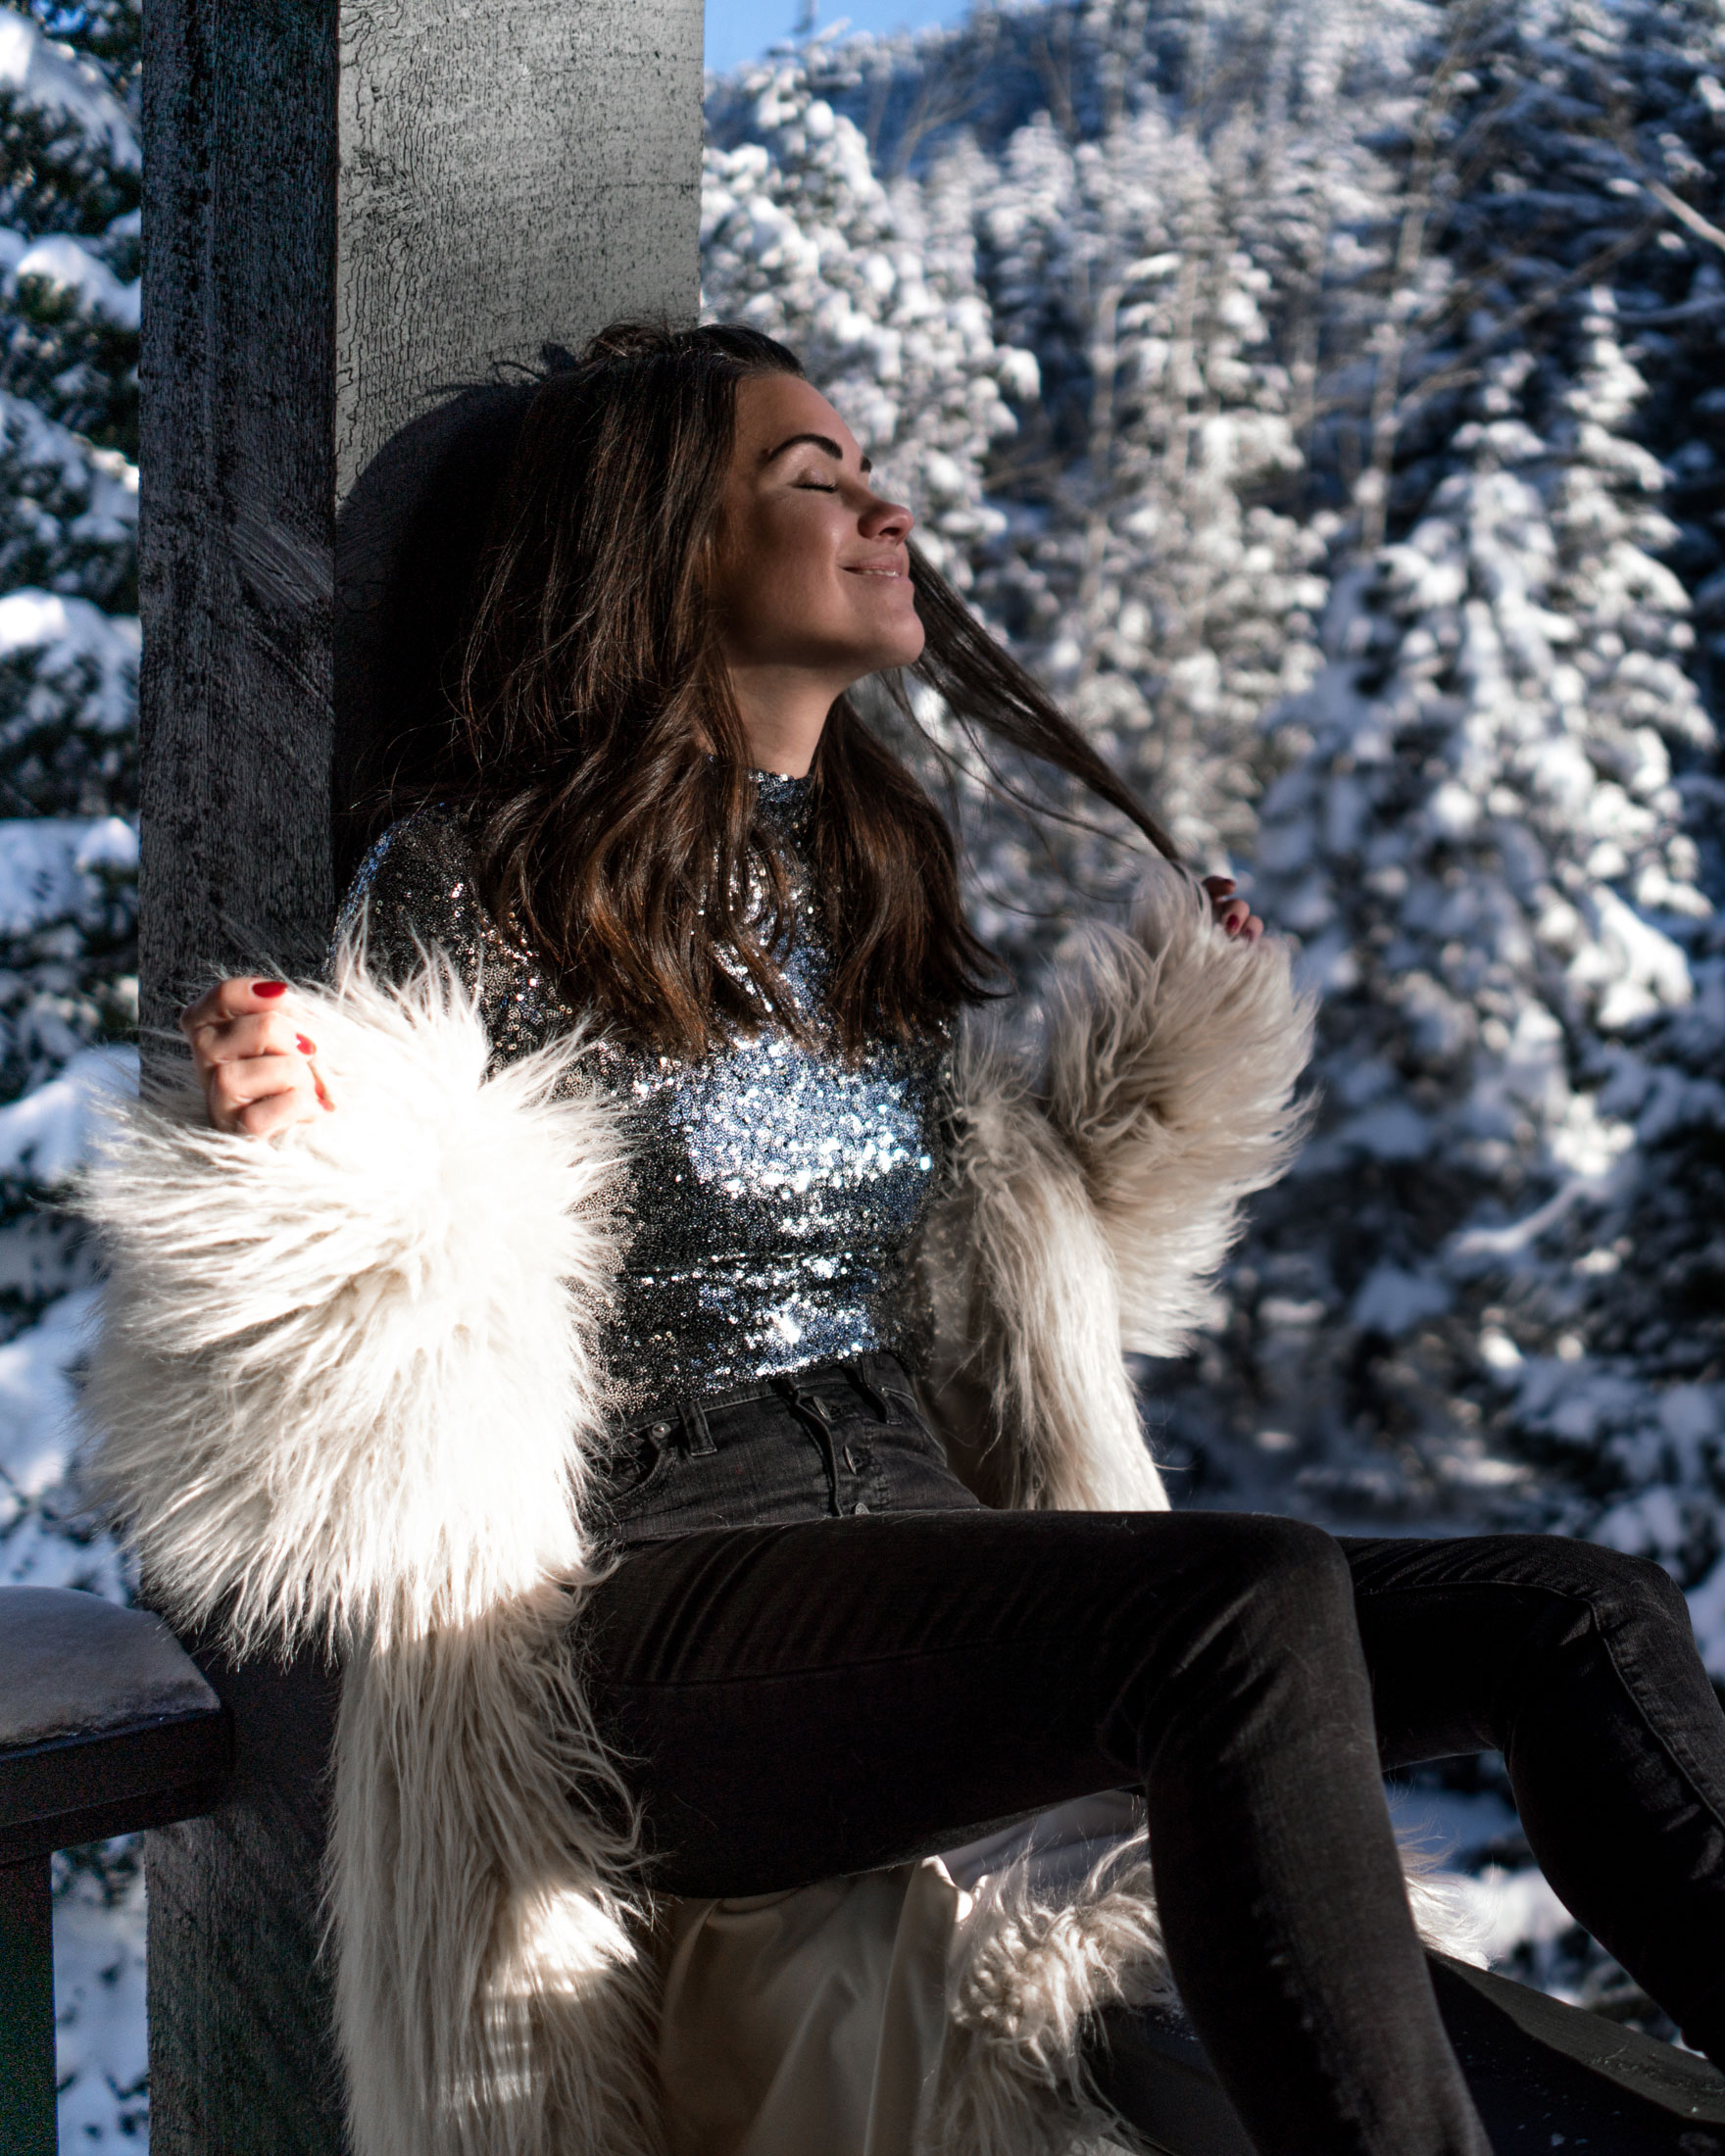 new years eve snow sequin fur outfit whistler5.jpg